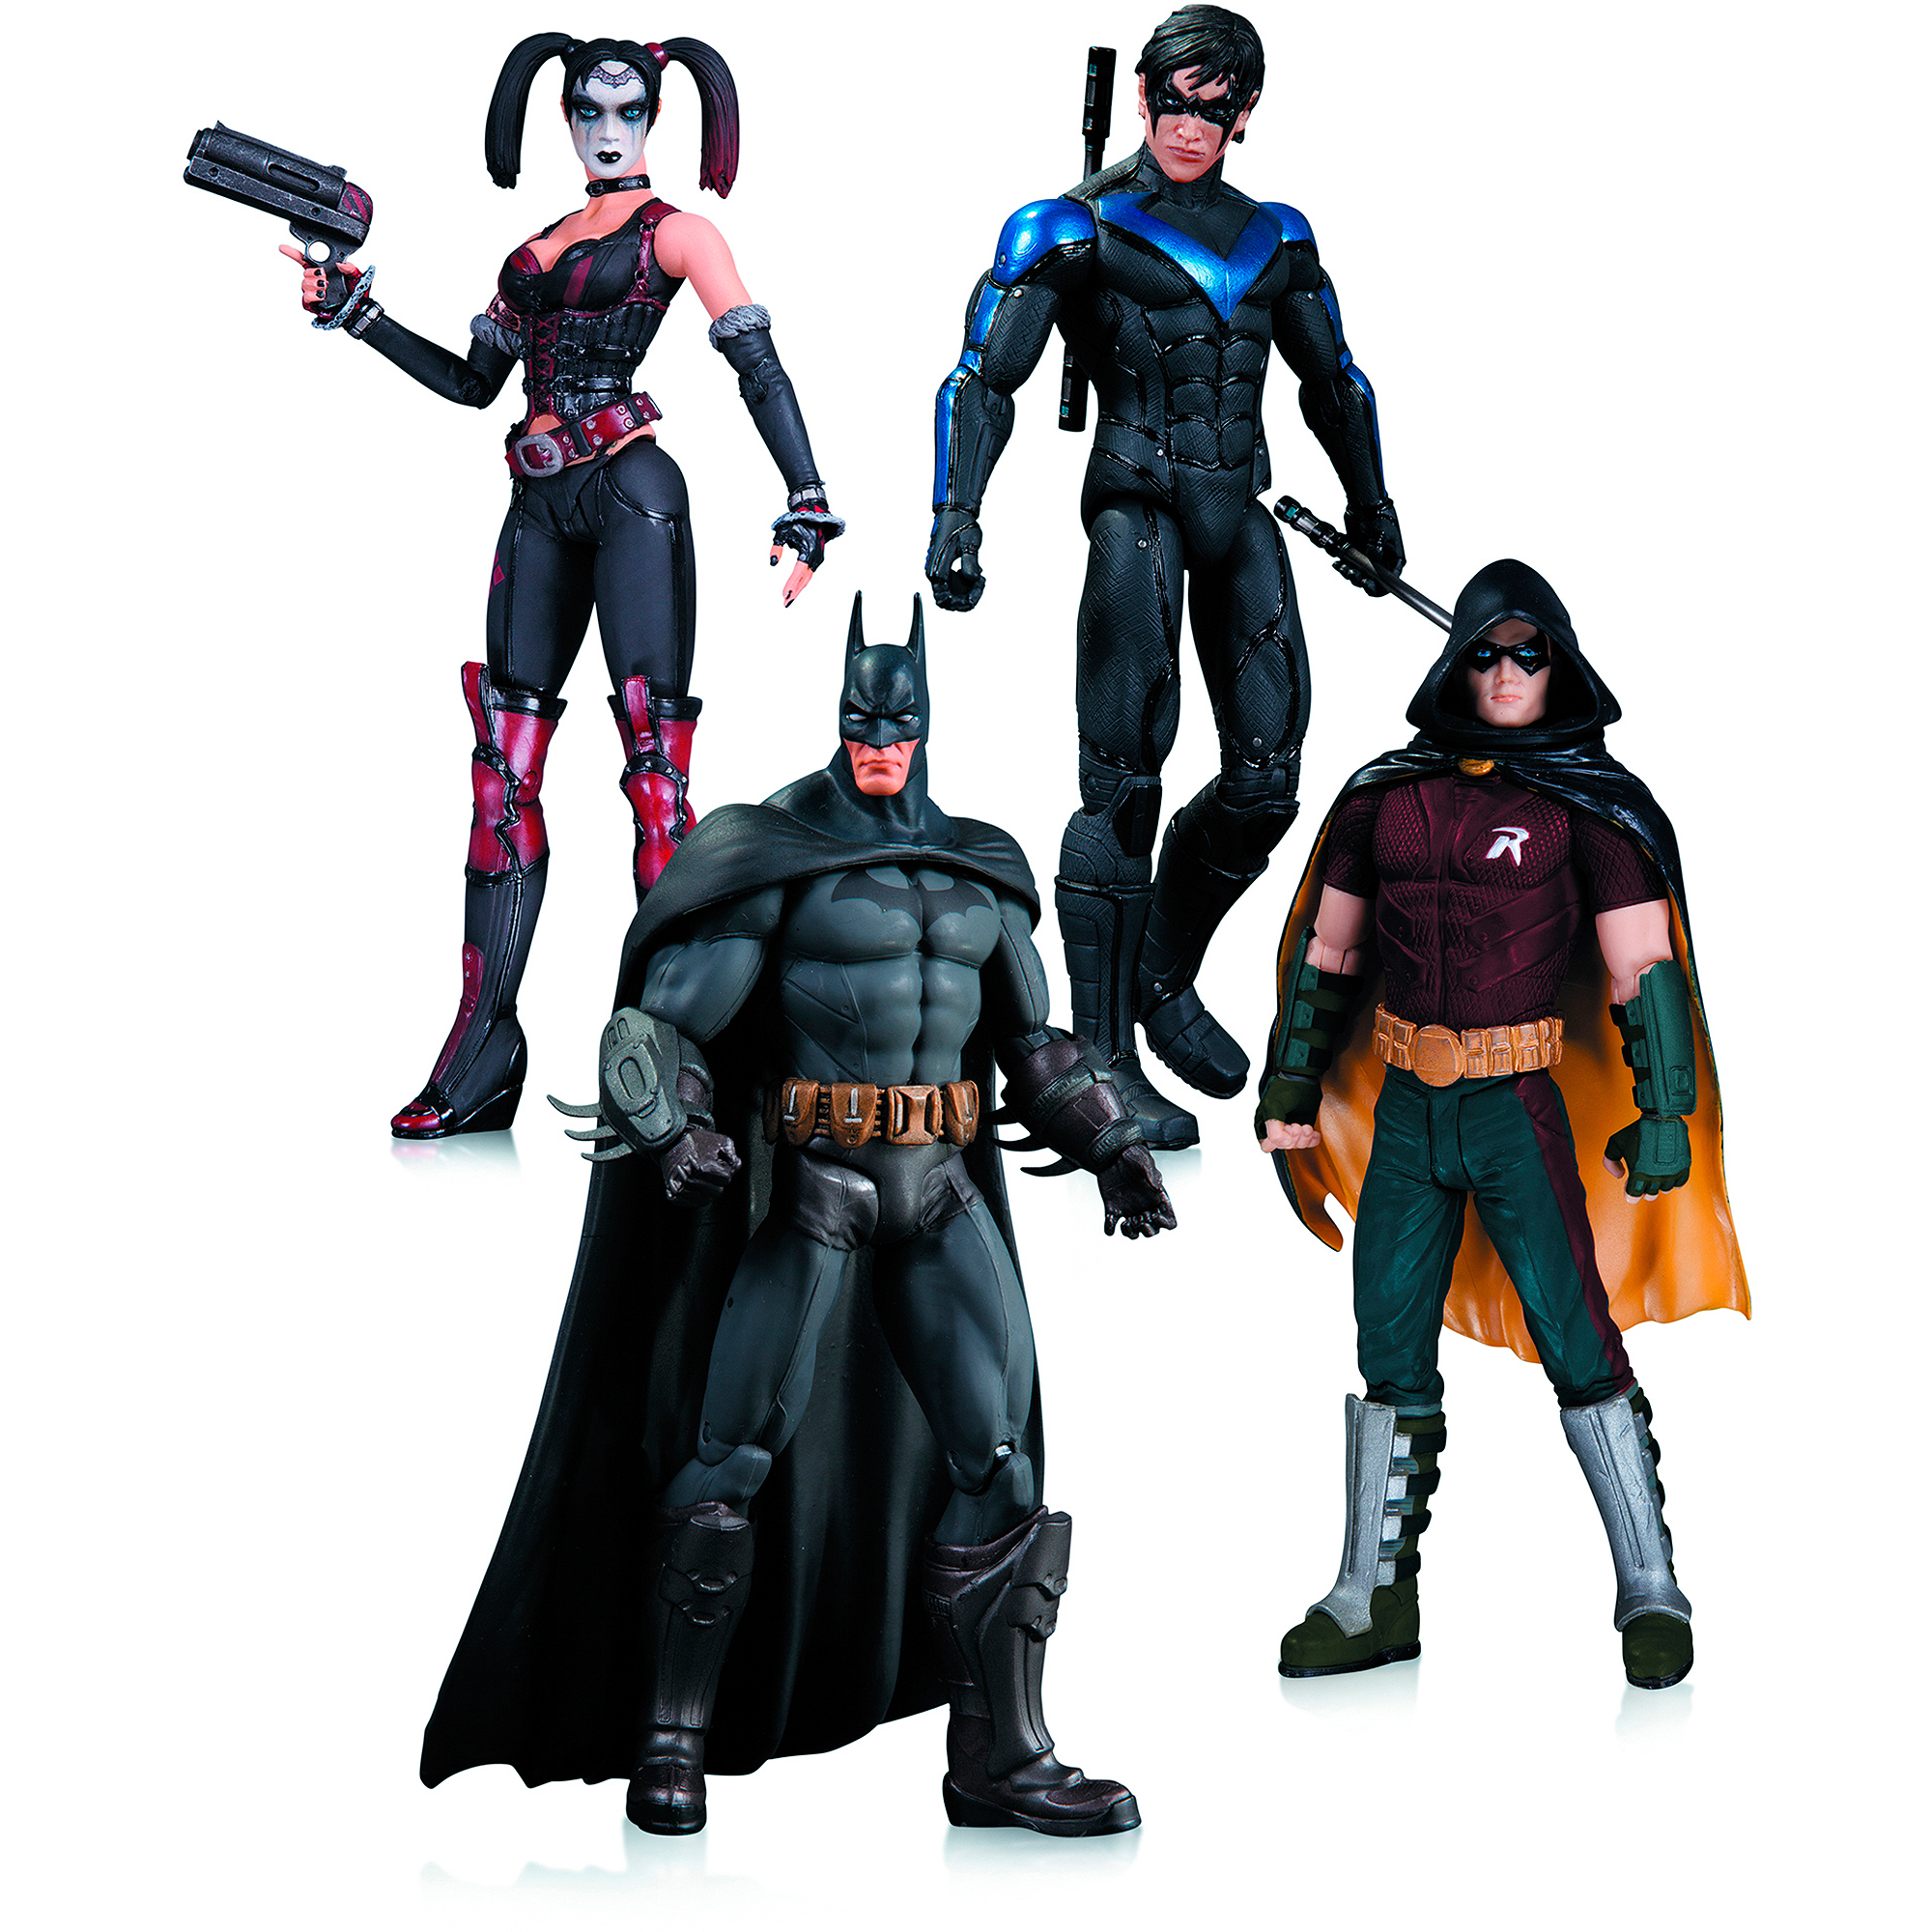 DC Comics Arkham City Action Figure Box Set, Harley Quinn, Batman, Nightwing and Robin